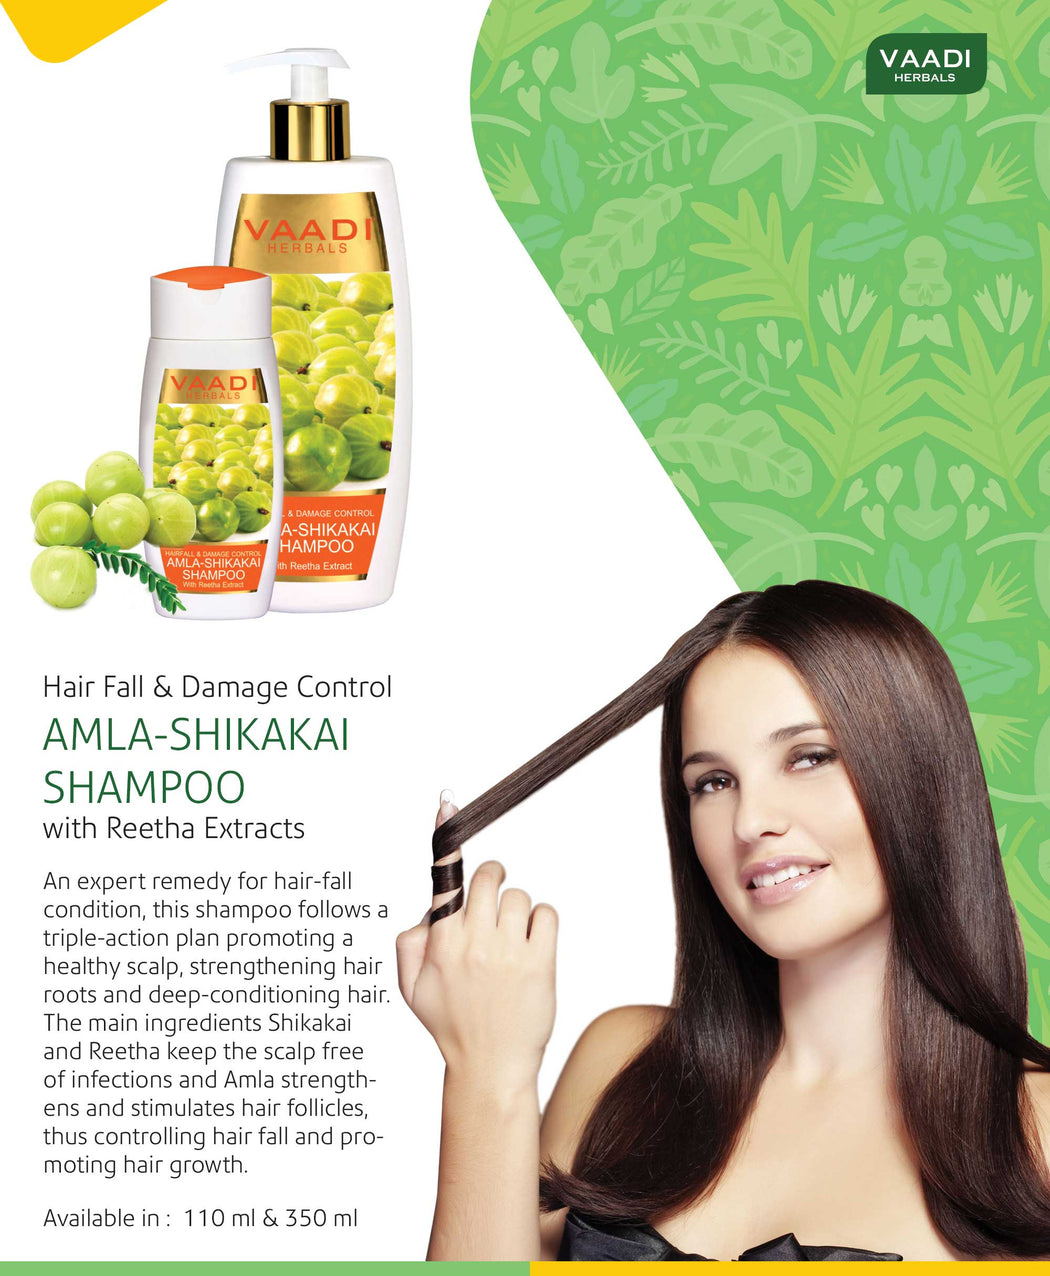 Hairfall & Damage Control Organic Shampoo (Indian Gooseberry Extract) (110 ml/4 fl oz)